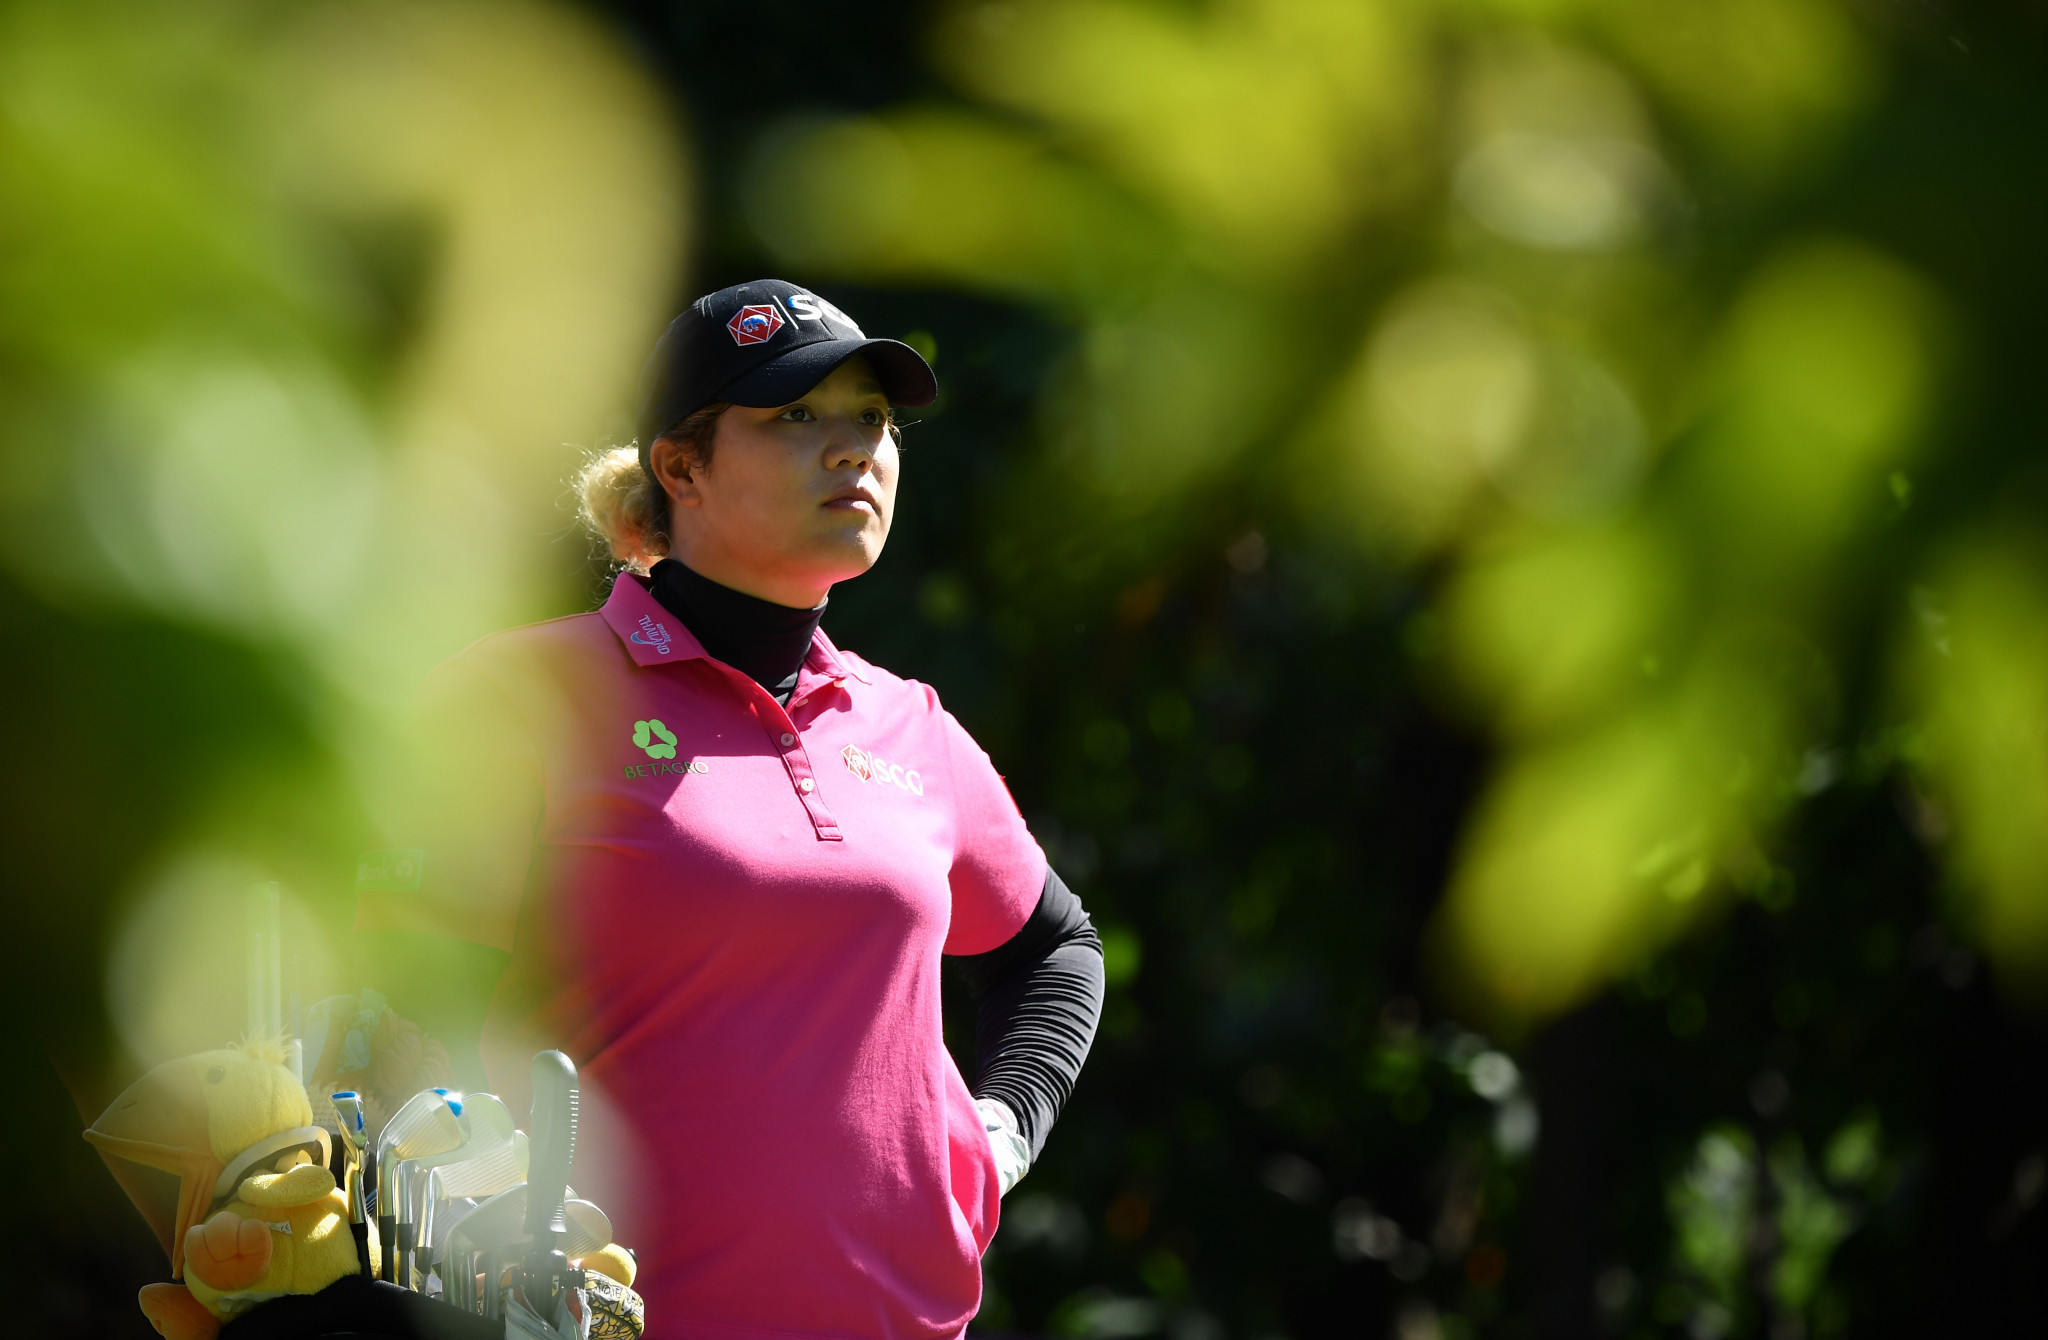 Ariya Jutanugarn will hope to be in contention for the title ©Getty Images